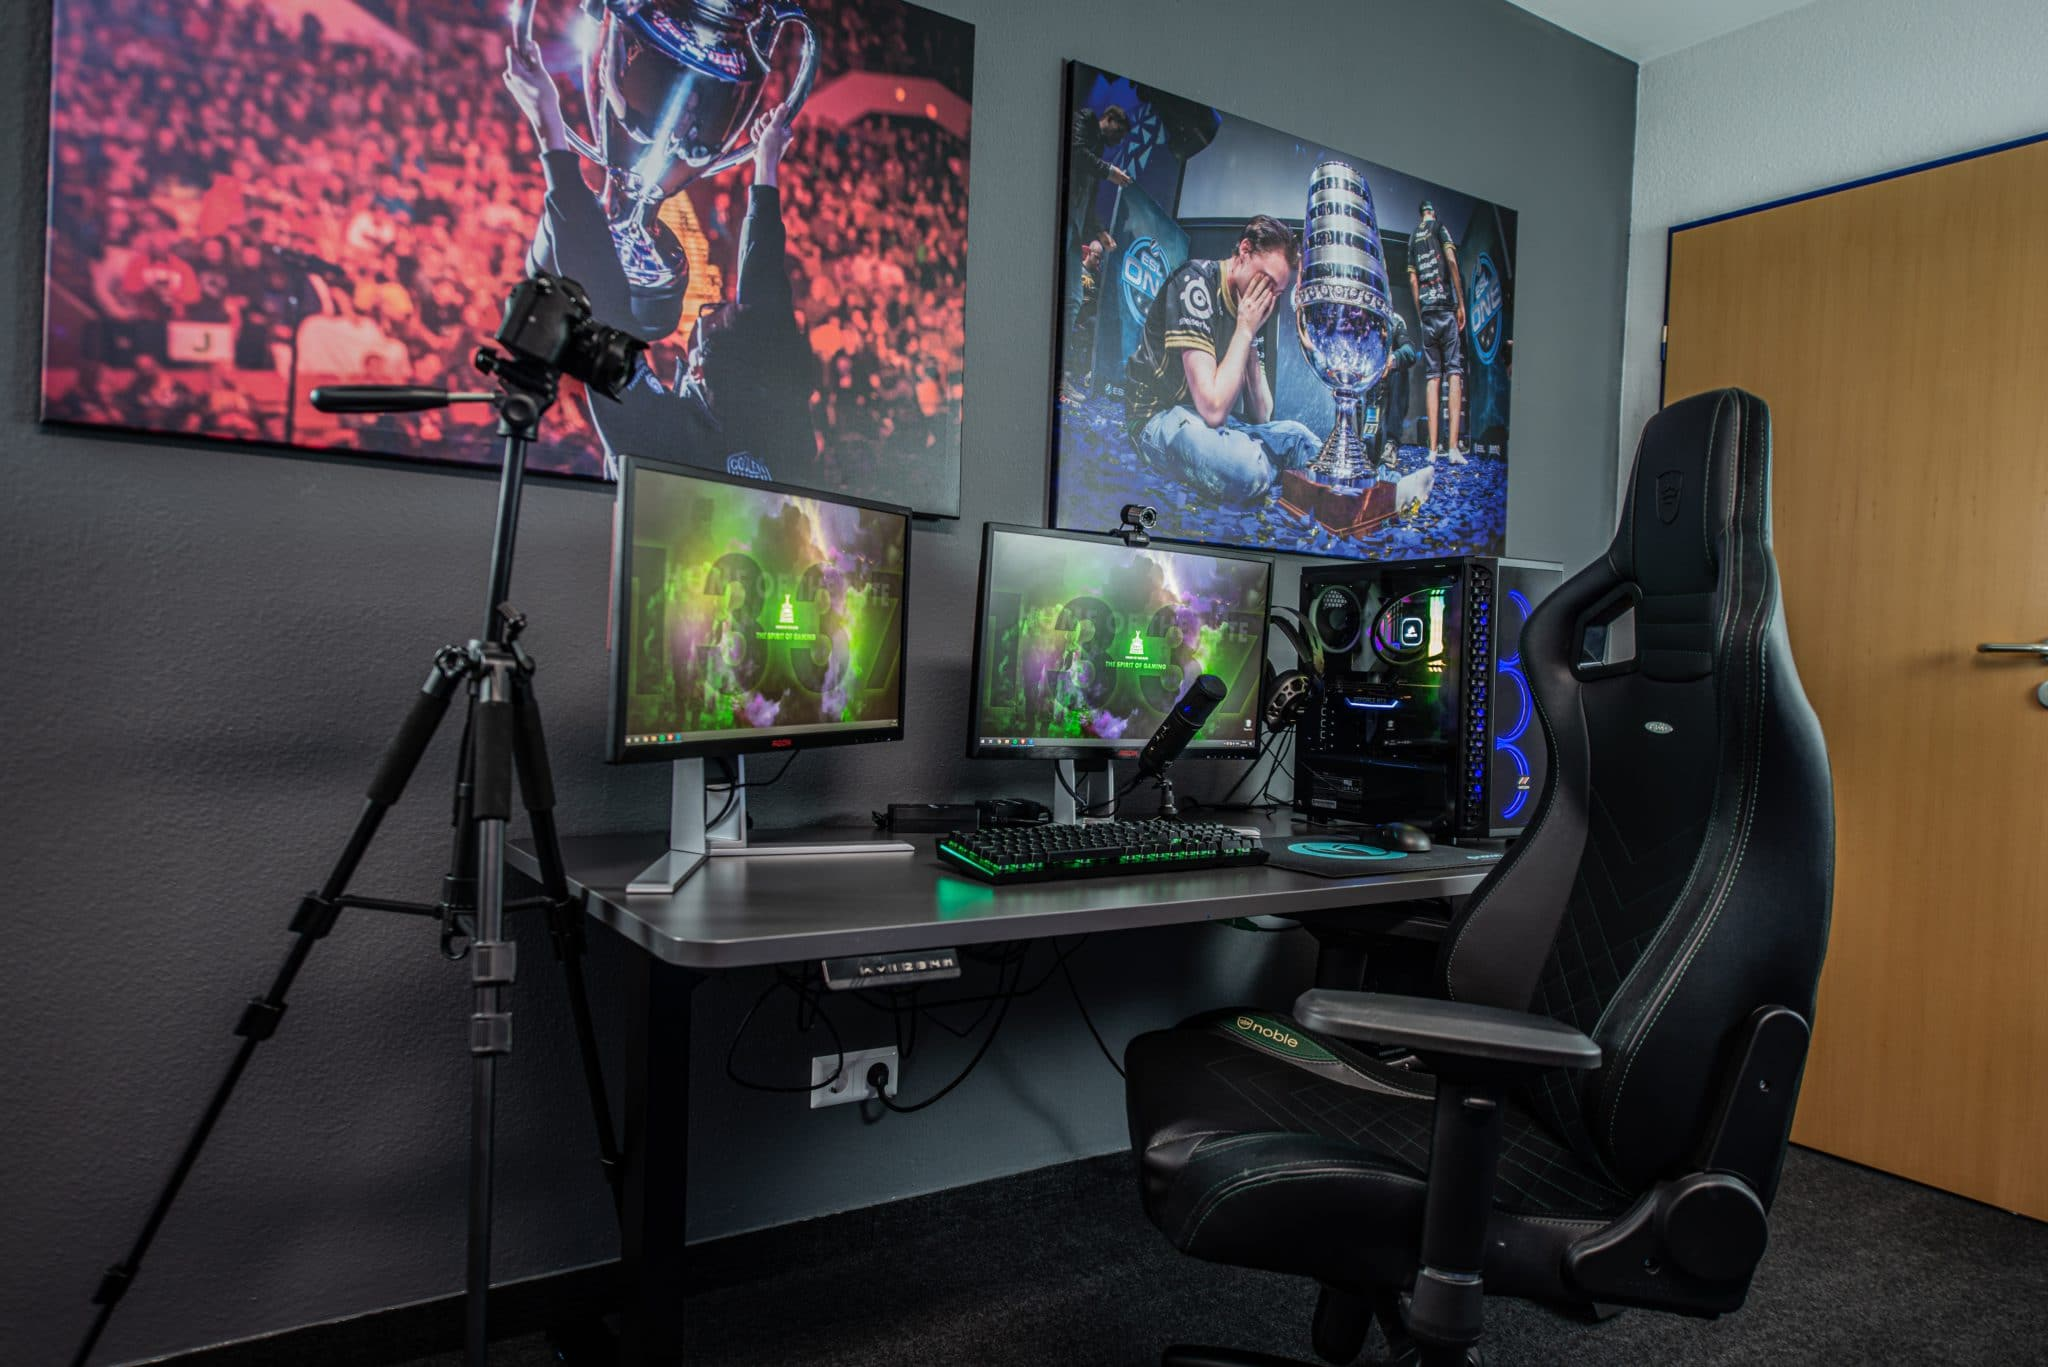 Digital marketing in gaming can permeate streamers, which means they can invest in their setup.